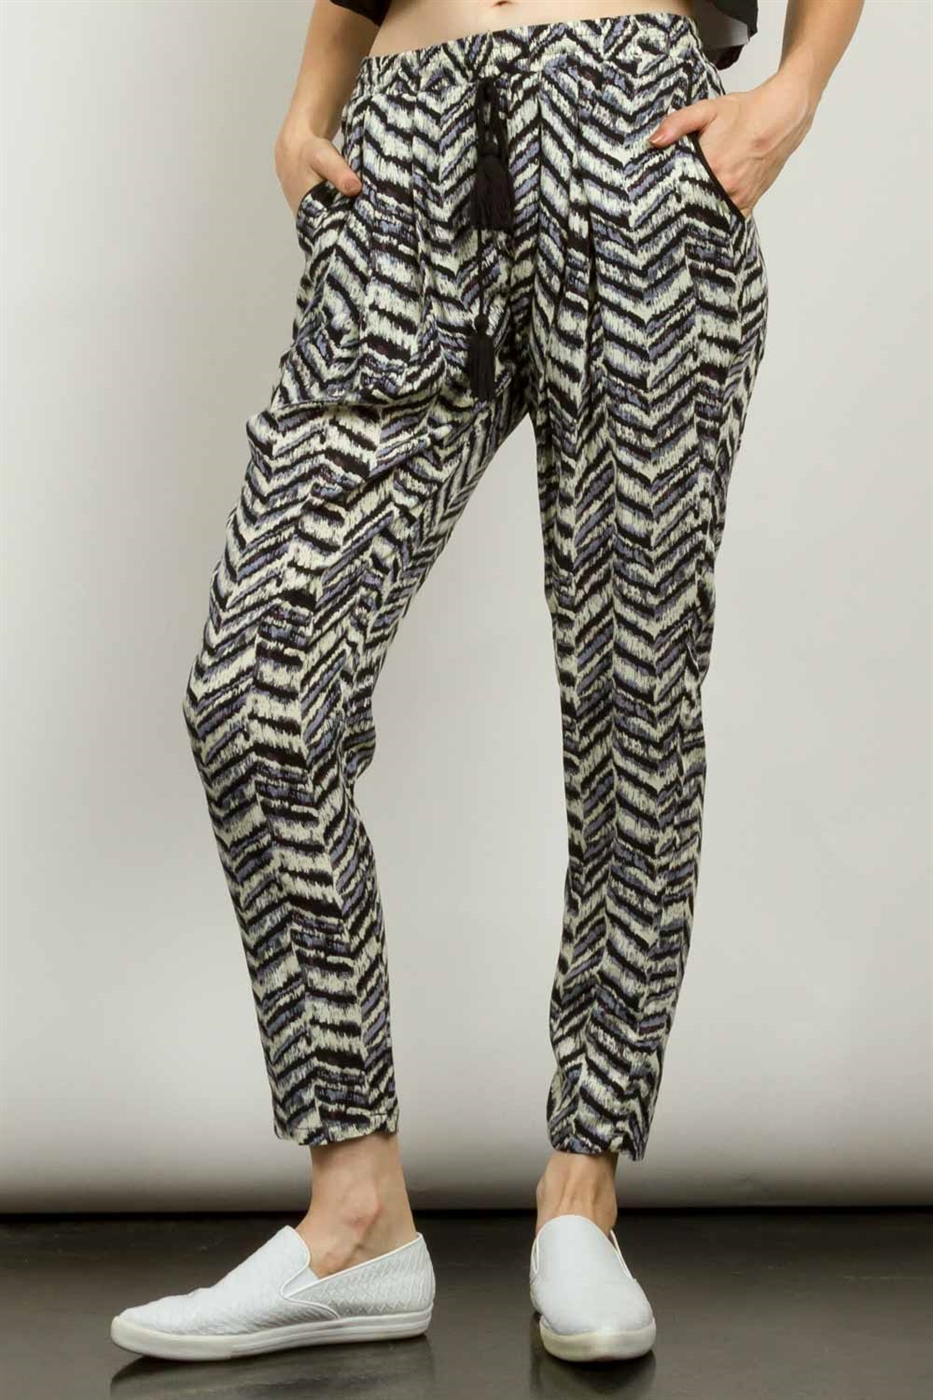 ANIMAL PRINTED JOGGER PANTS - orangeshine.com